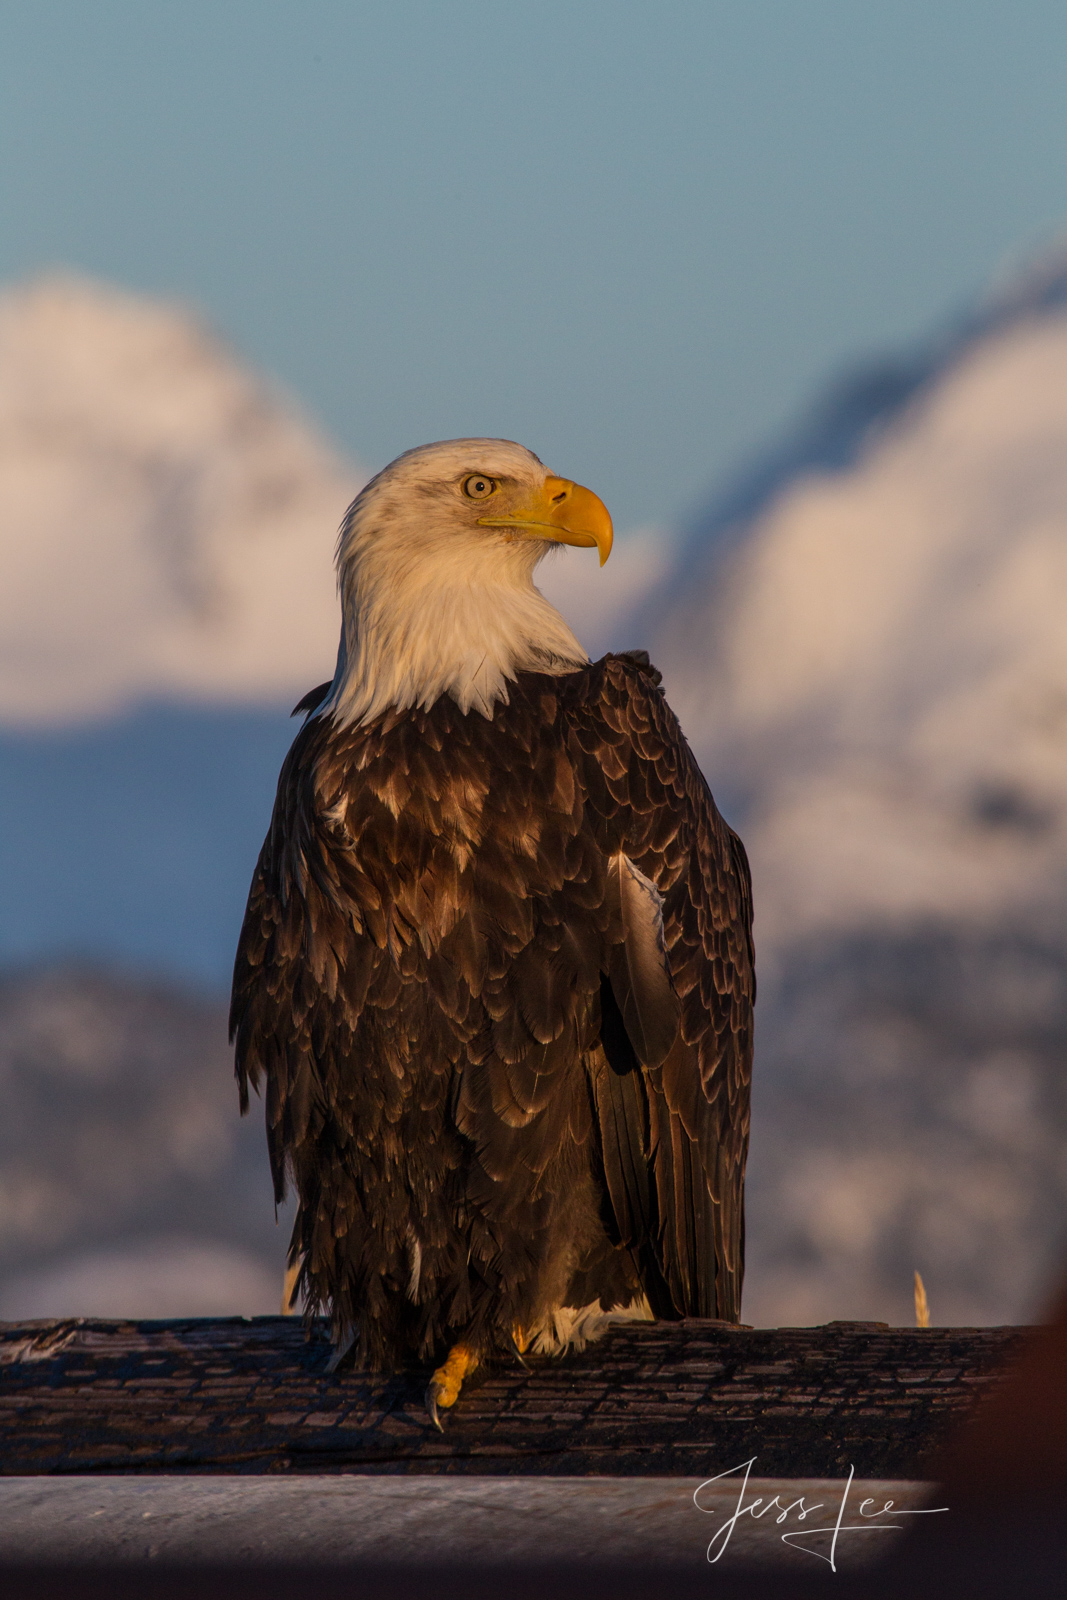 Bring home the power and beauty of the amazing fine art American Bald Eagle photograph All American by Jess Lee from his Wildlife...